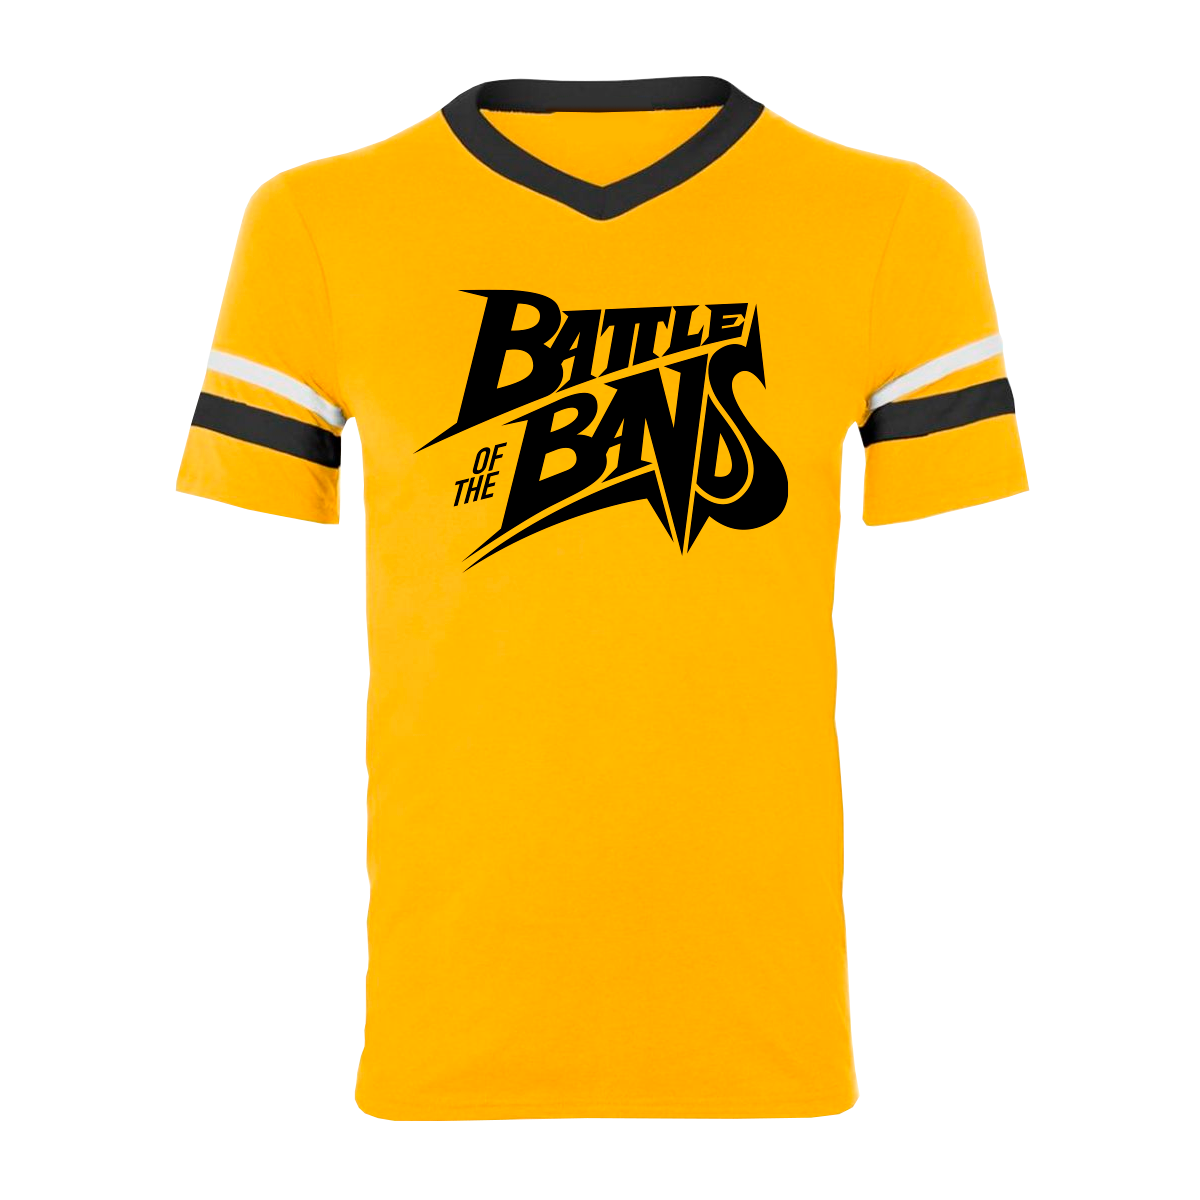 Battle of the Bands Tee - Yellow